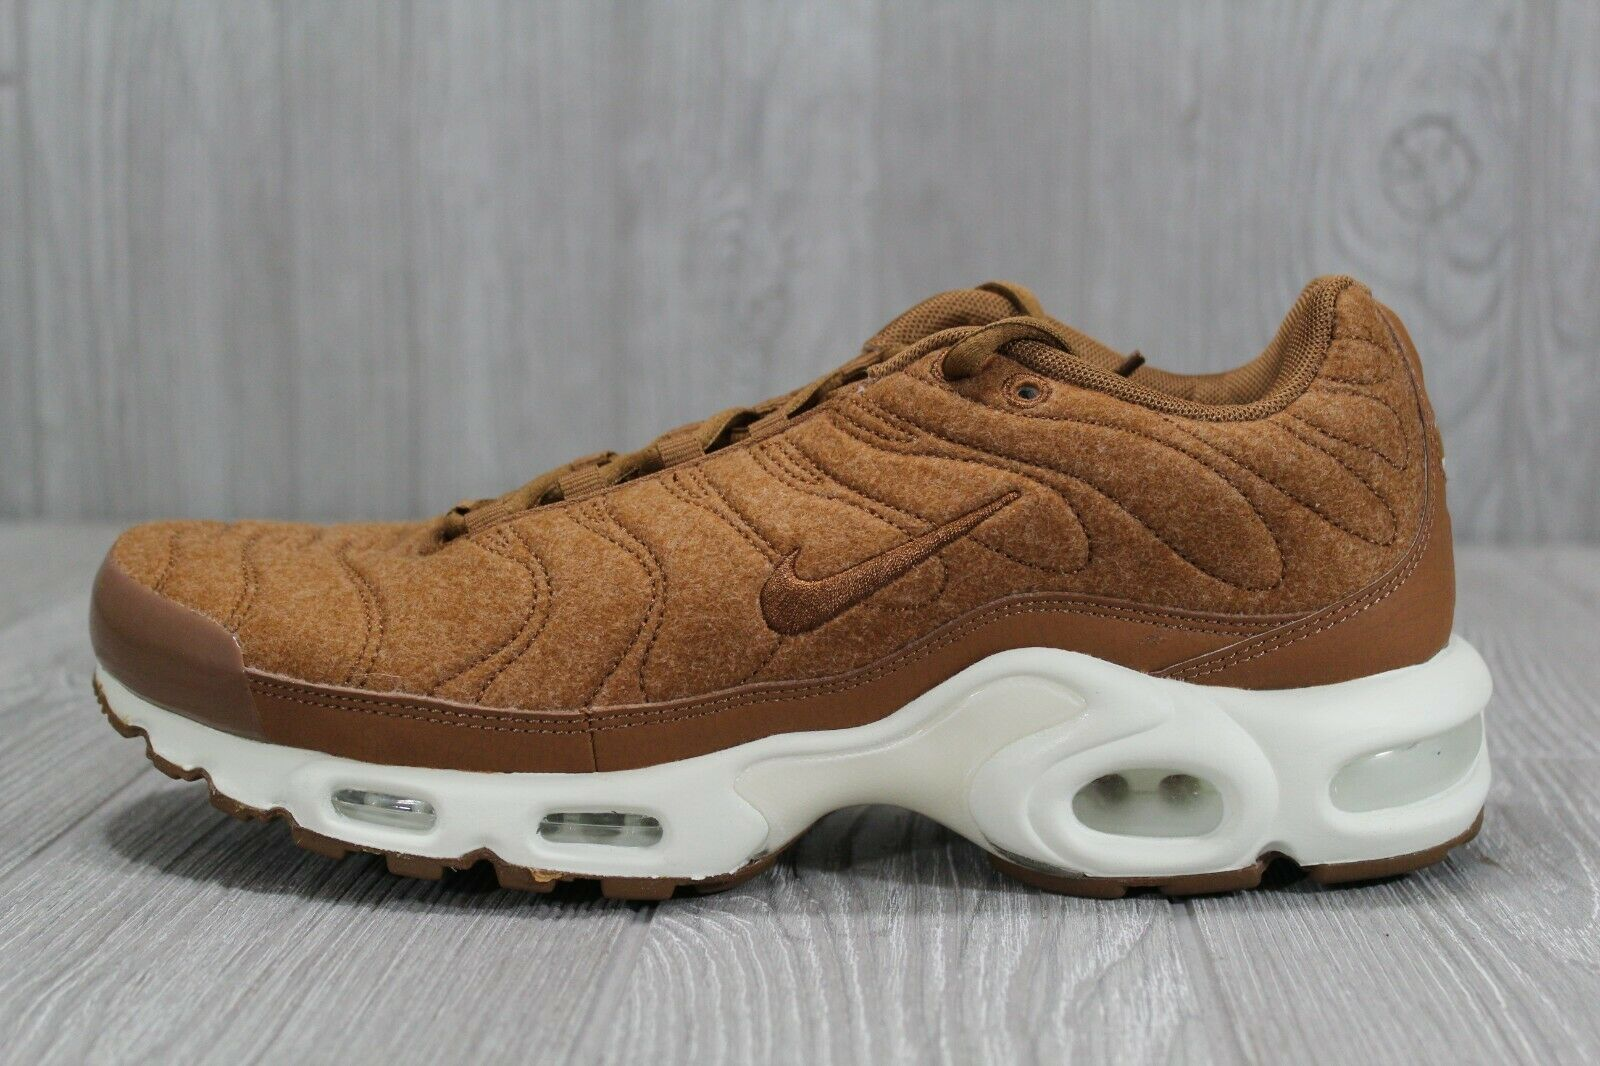 2a68c5ac37af 39 Nike Air Max Max Max Plus TN shoes Quilted Brown Ale Wheat SZ 9 ...